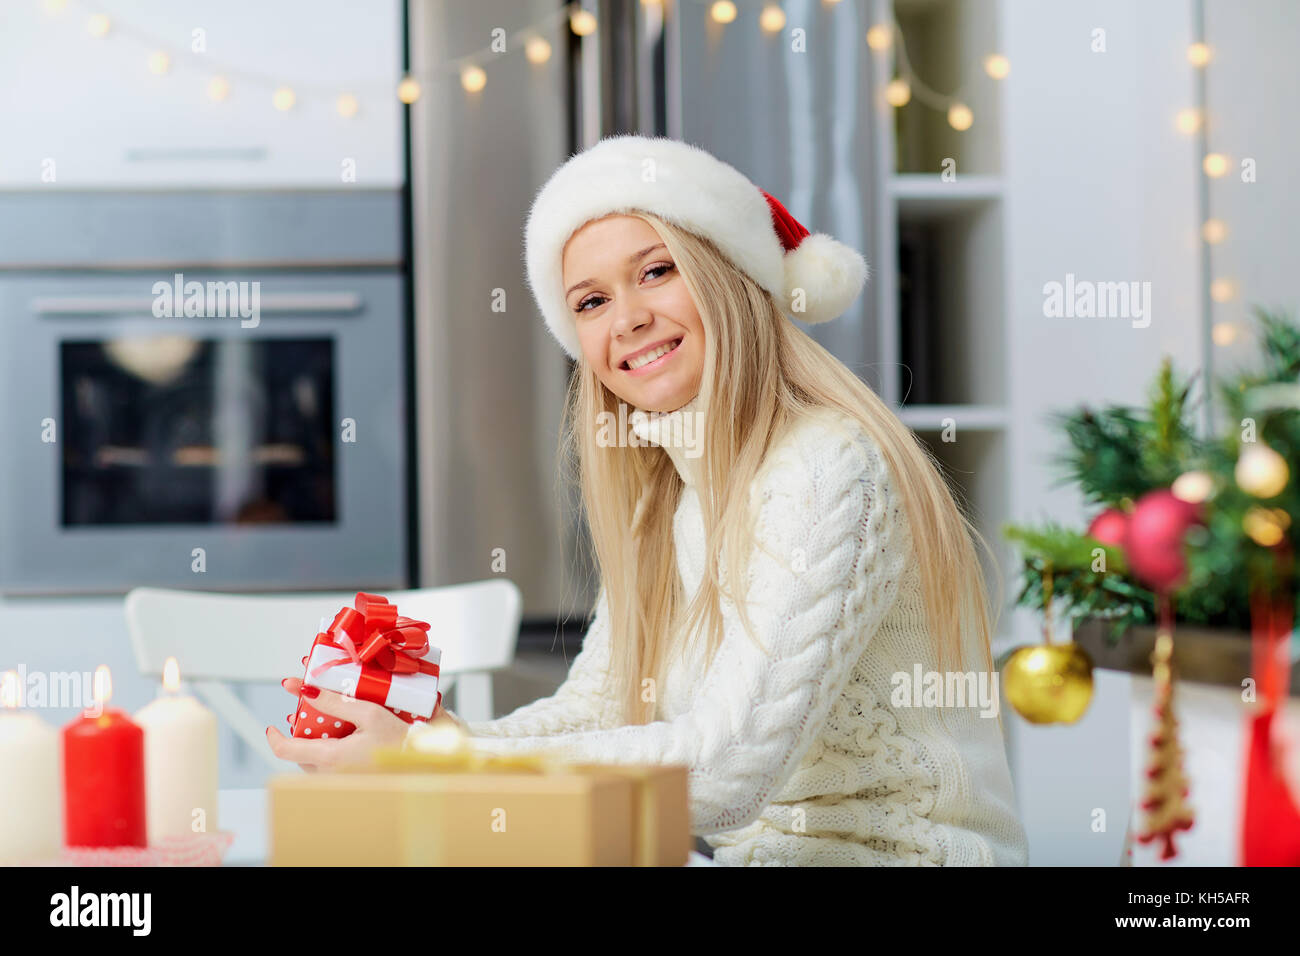 c45a9cb80328b A blonde girl in a Santa Claus hat with a gift in her hand for C ...